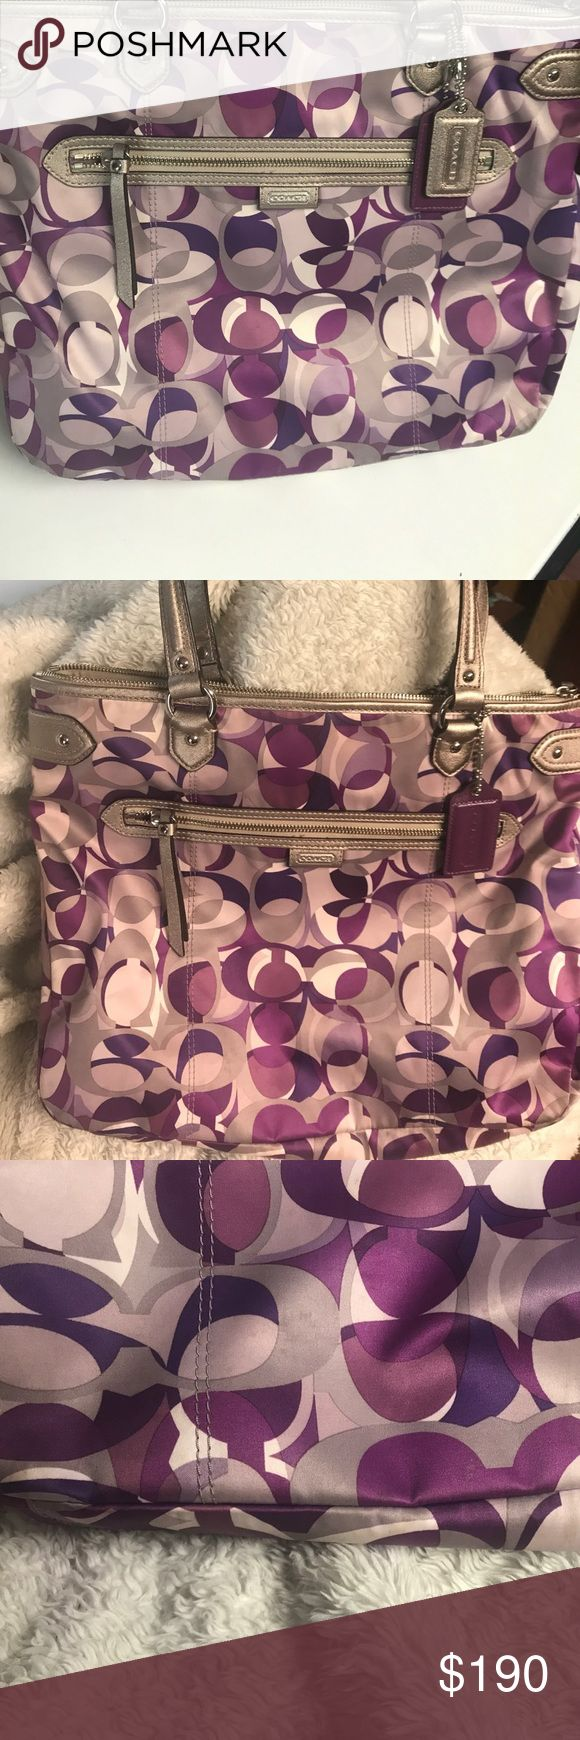 Authentic coach purse This is a beautiful grey purple and white coach purse . It's a larger size purse with a zipper pocket in the front and an open pocket on the back . The handles are in excellent condition . This purse is in loved used condition meaning there are some signs of use on the bottom and some on the front towards the bottom of the bag . I tried to get a picture to show the spots the best I could . Feel free to ask any questions ! Coach Bags Satchels